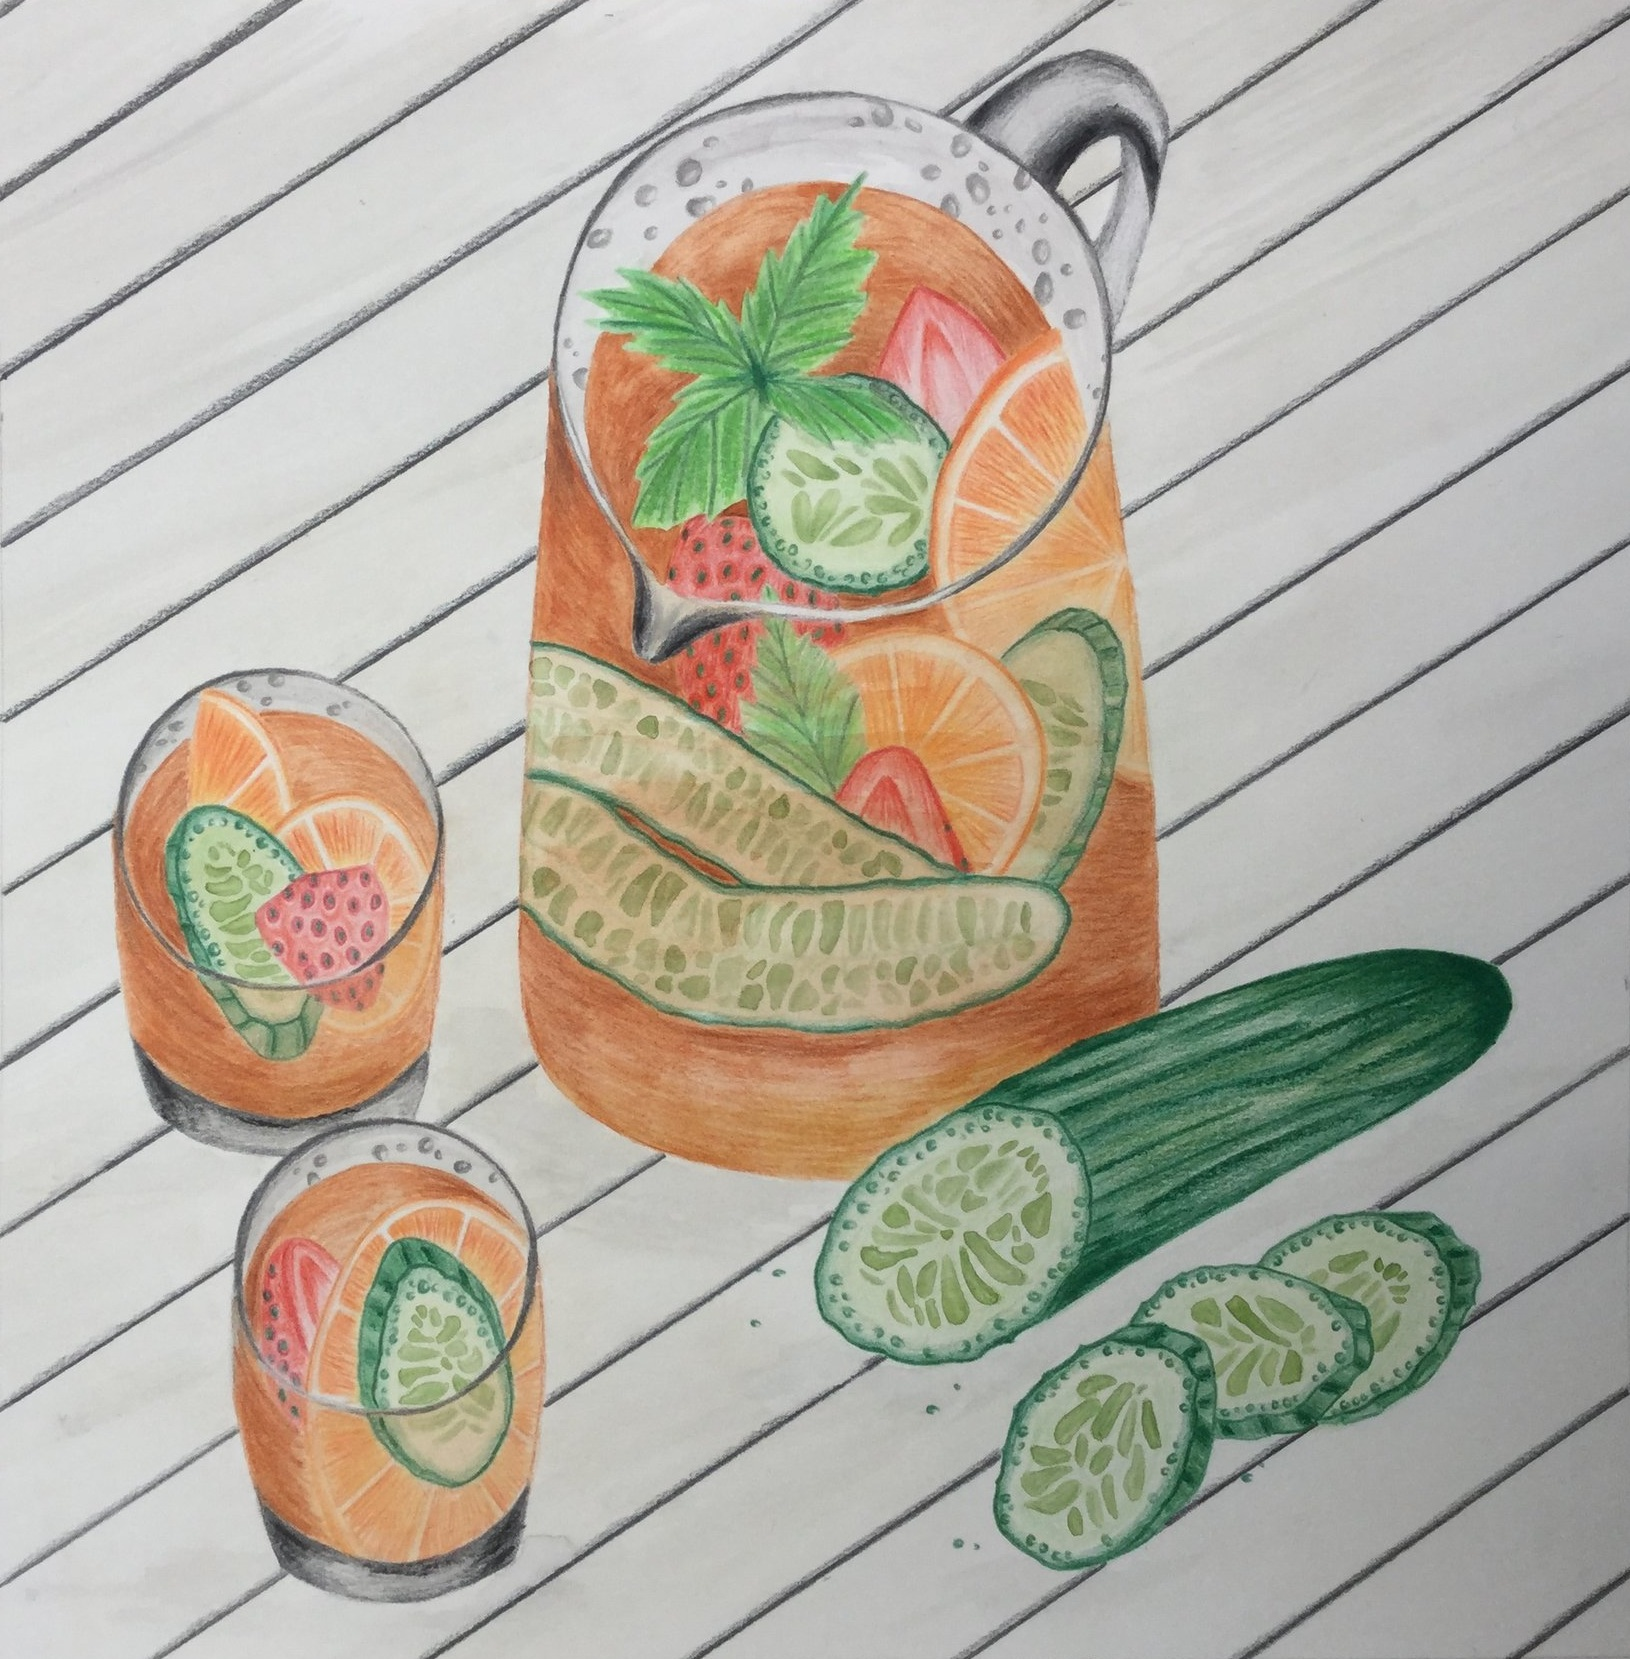 Jug of Pimms illustration by Briony Dixon